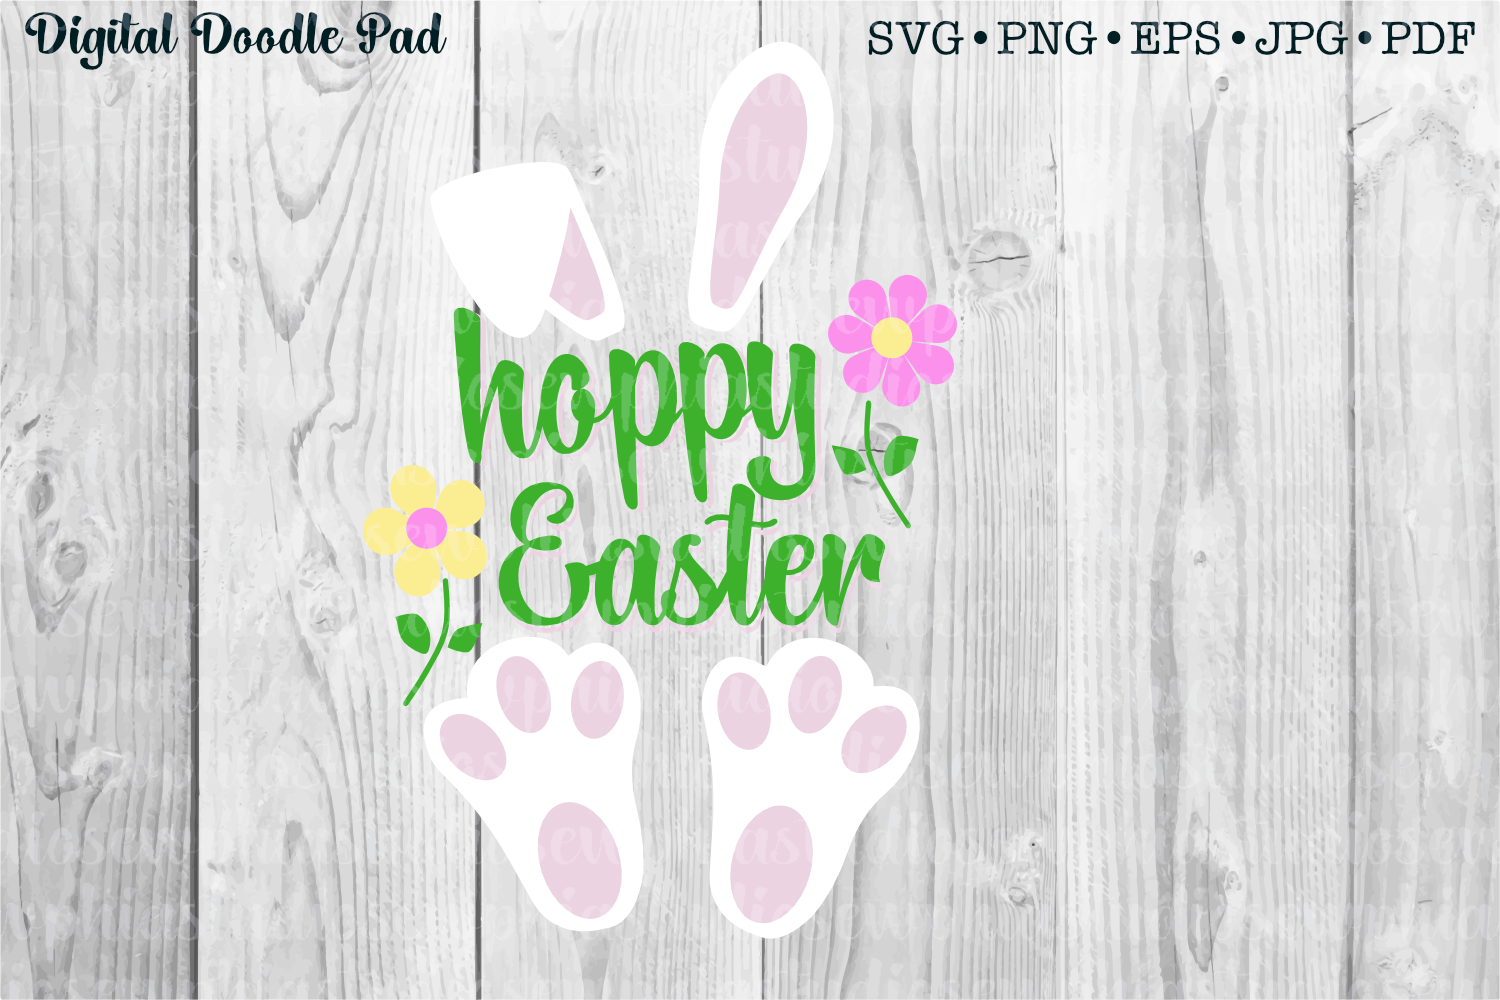 Hoppy Happy Easter by Digital Doodle Pad example image 1